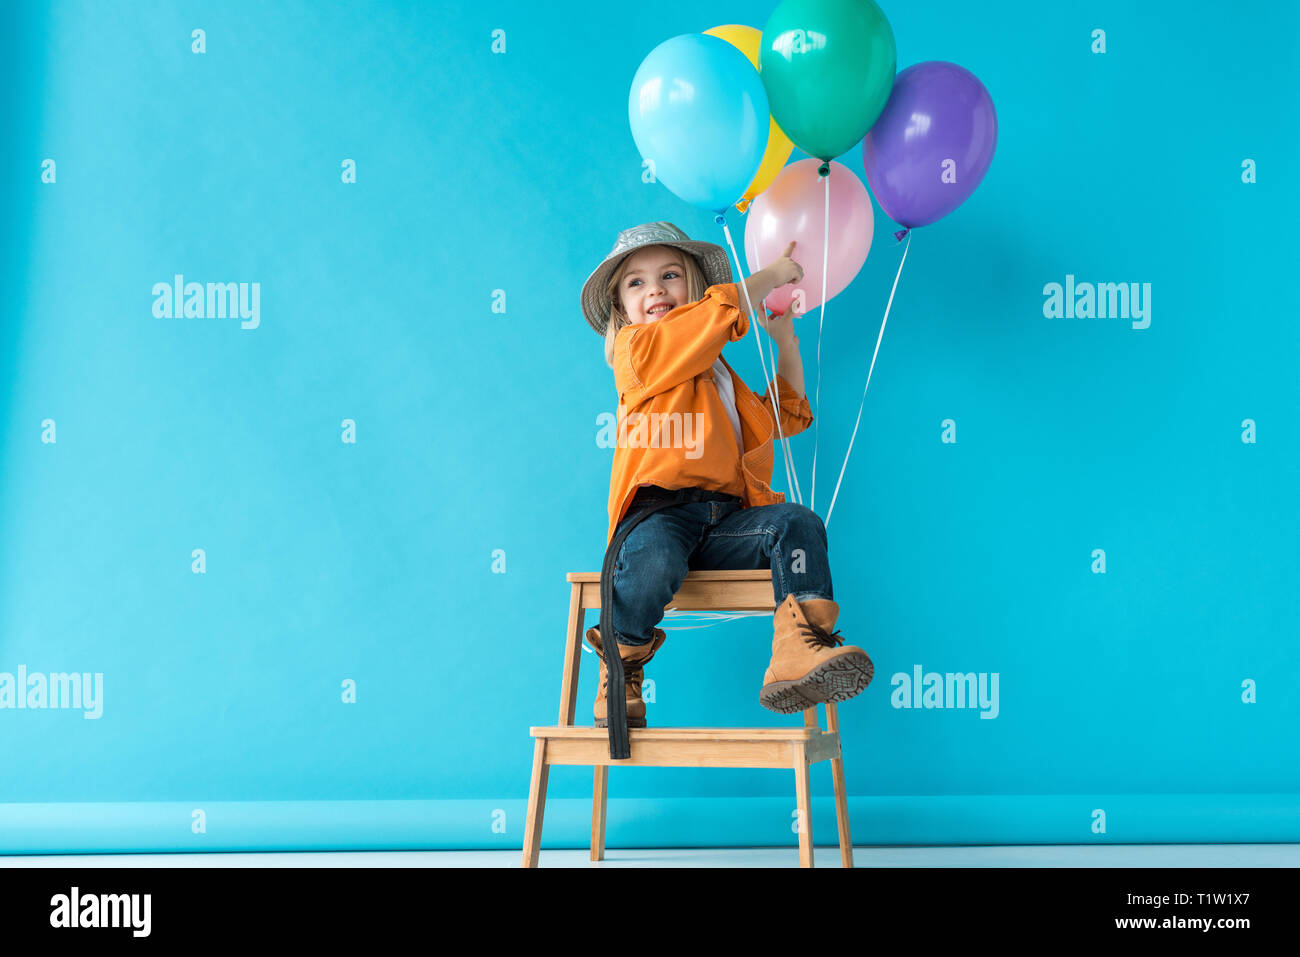 cute kid in jeans and orange shirt sitting on stairs and pointing with finger at balloons Stock Photo